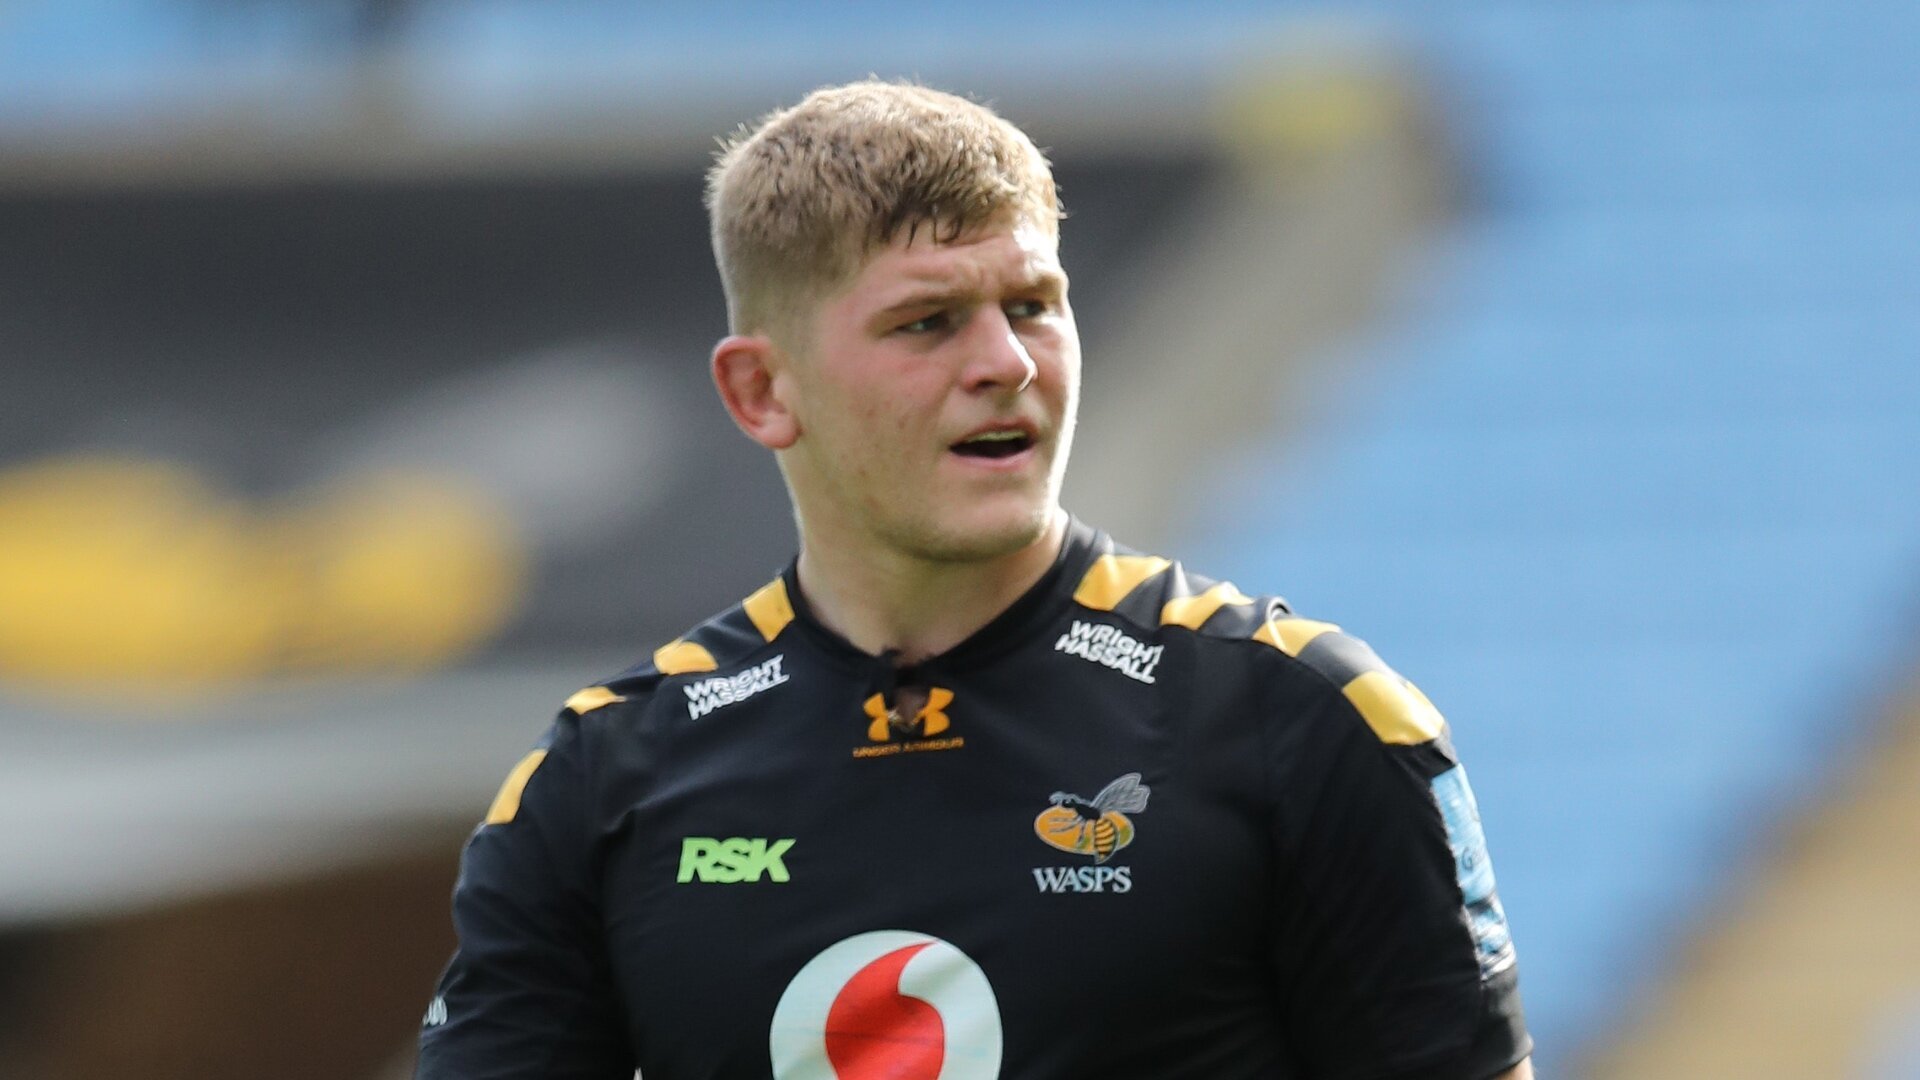 The back garden rivalry that has Wasps' Jack Willis on cusp of England call-up after semi-final heroics